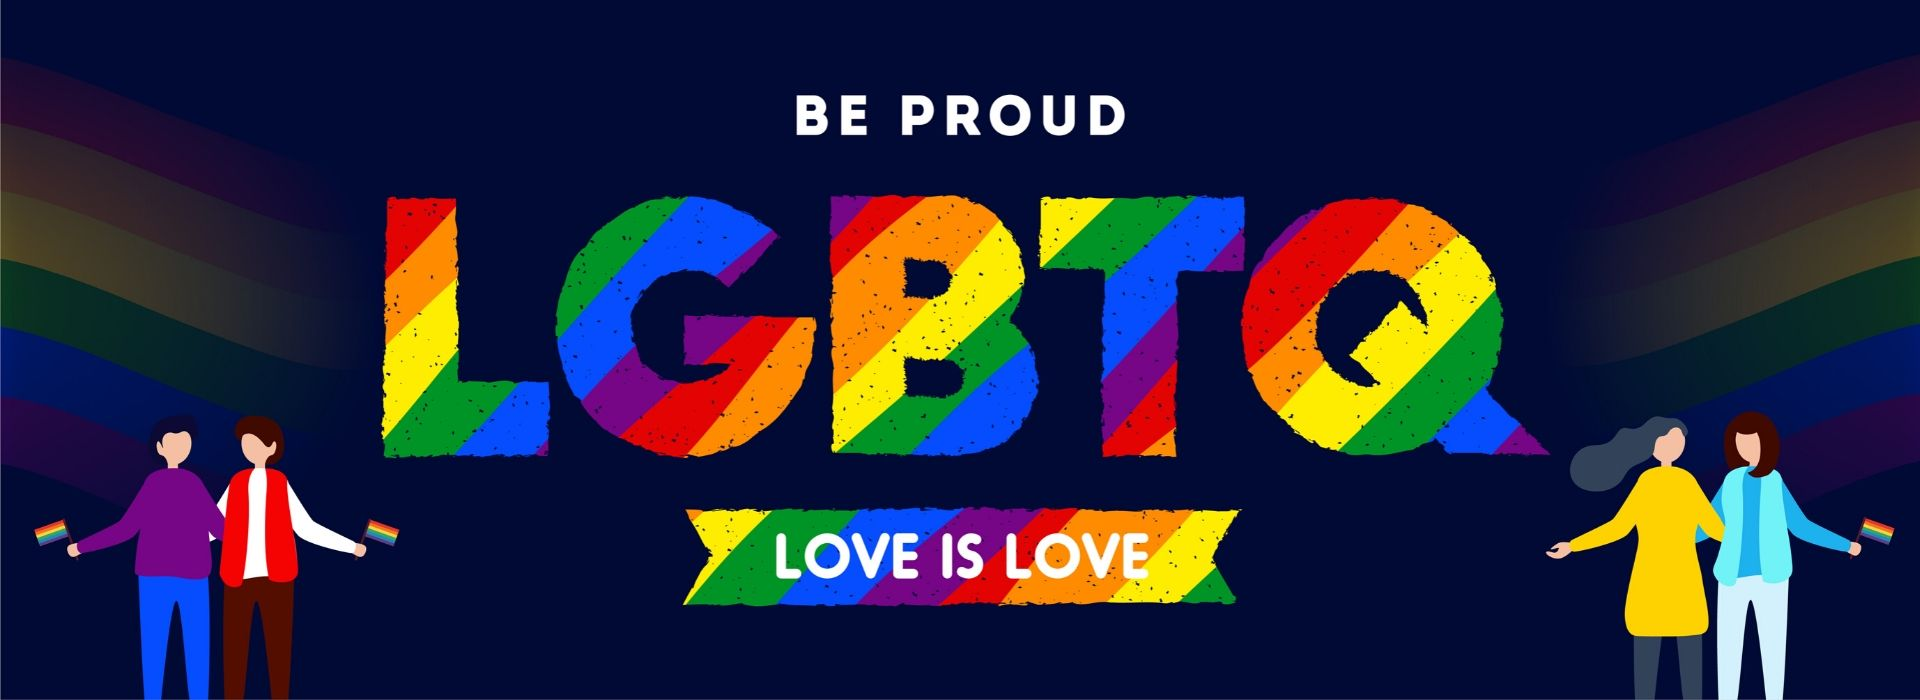 Be Proud LGBTQ Love is Love Banner Graphic